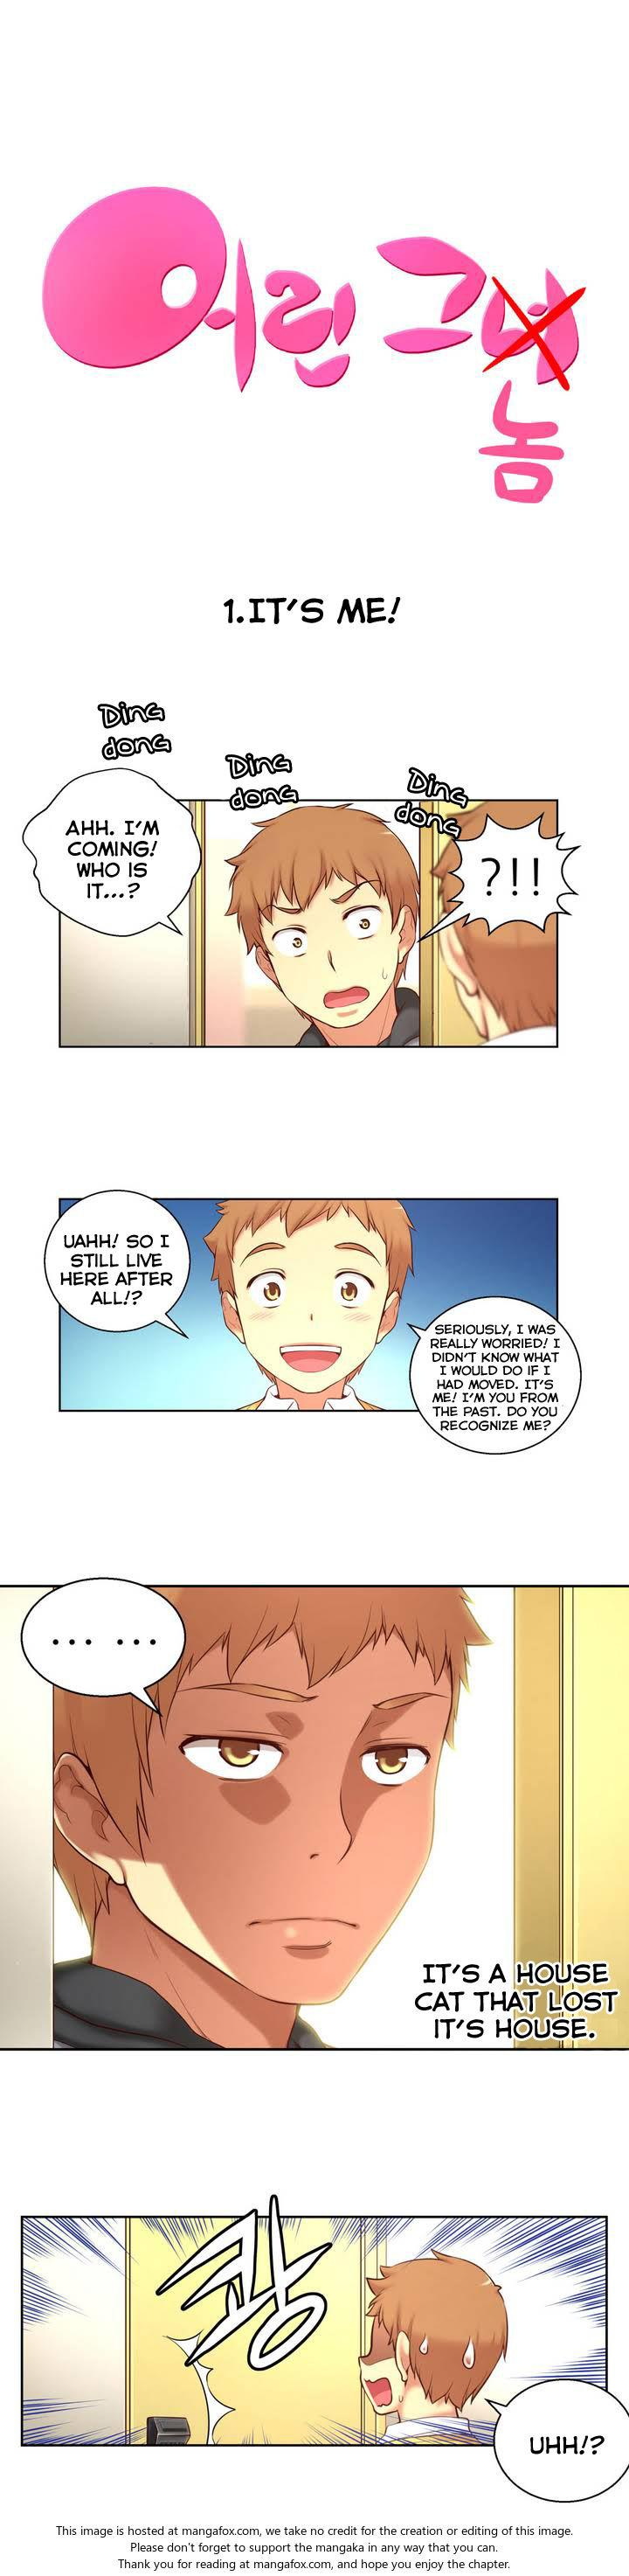 [Donggul Gom] She is Young (English) Part 1/2 758